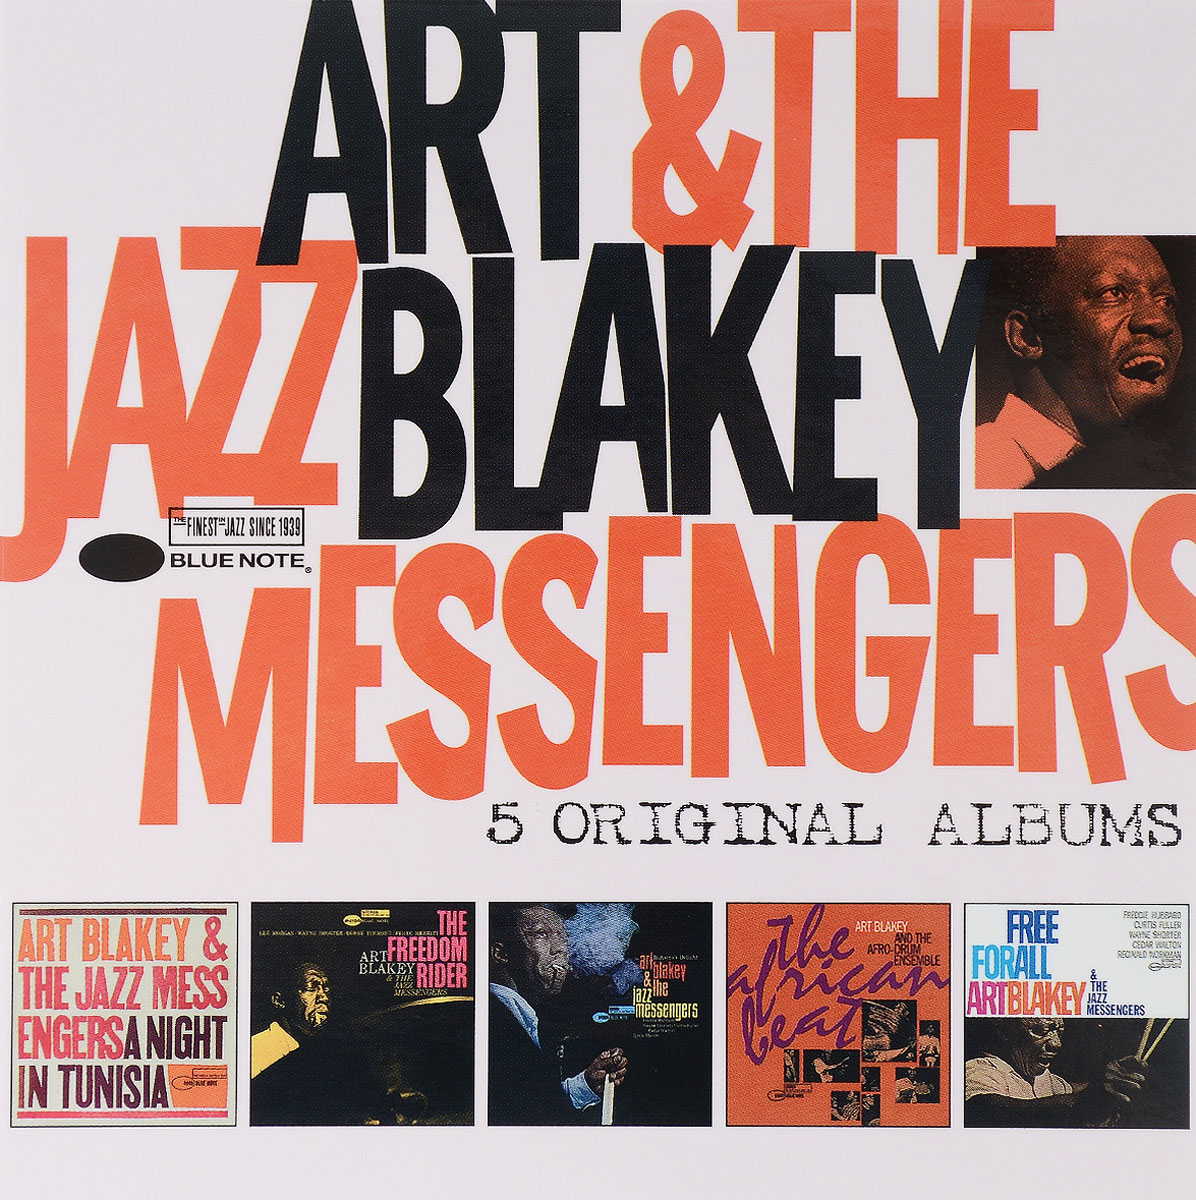 Арт Блэйки,The Jazz Messengers,The Afro-Drum Ensemble,The Jazz Messengers Art Blakey & The Jazz Messengers. 5 Original Albums (5 CD) custom murals flowering trees branches pink color flowers wallpapers living room tv sofa wall bedroom 3d wallpaper background